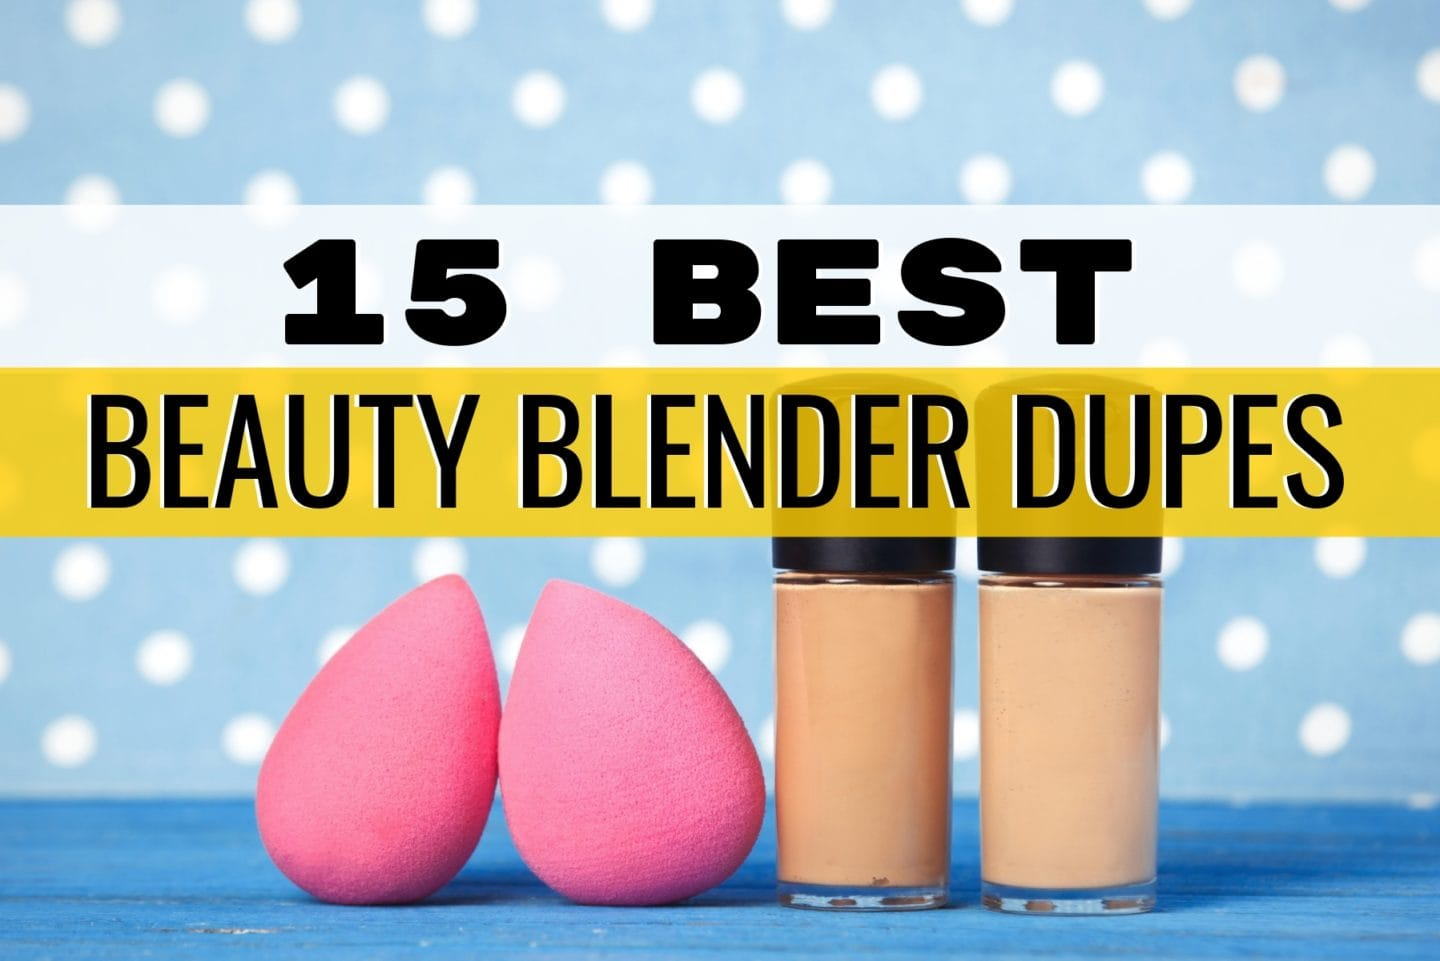 In search of the best beauty blender dupe? Here are the 15 most-wanted makeup sponge applicators starting at $3! #beautyblender #makeuptips #amazonfashion #luxurybeauty #makeupsponge